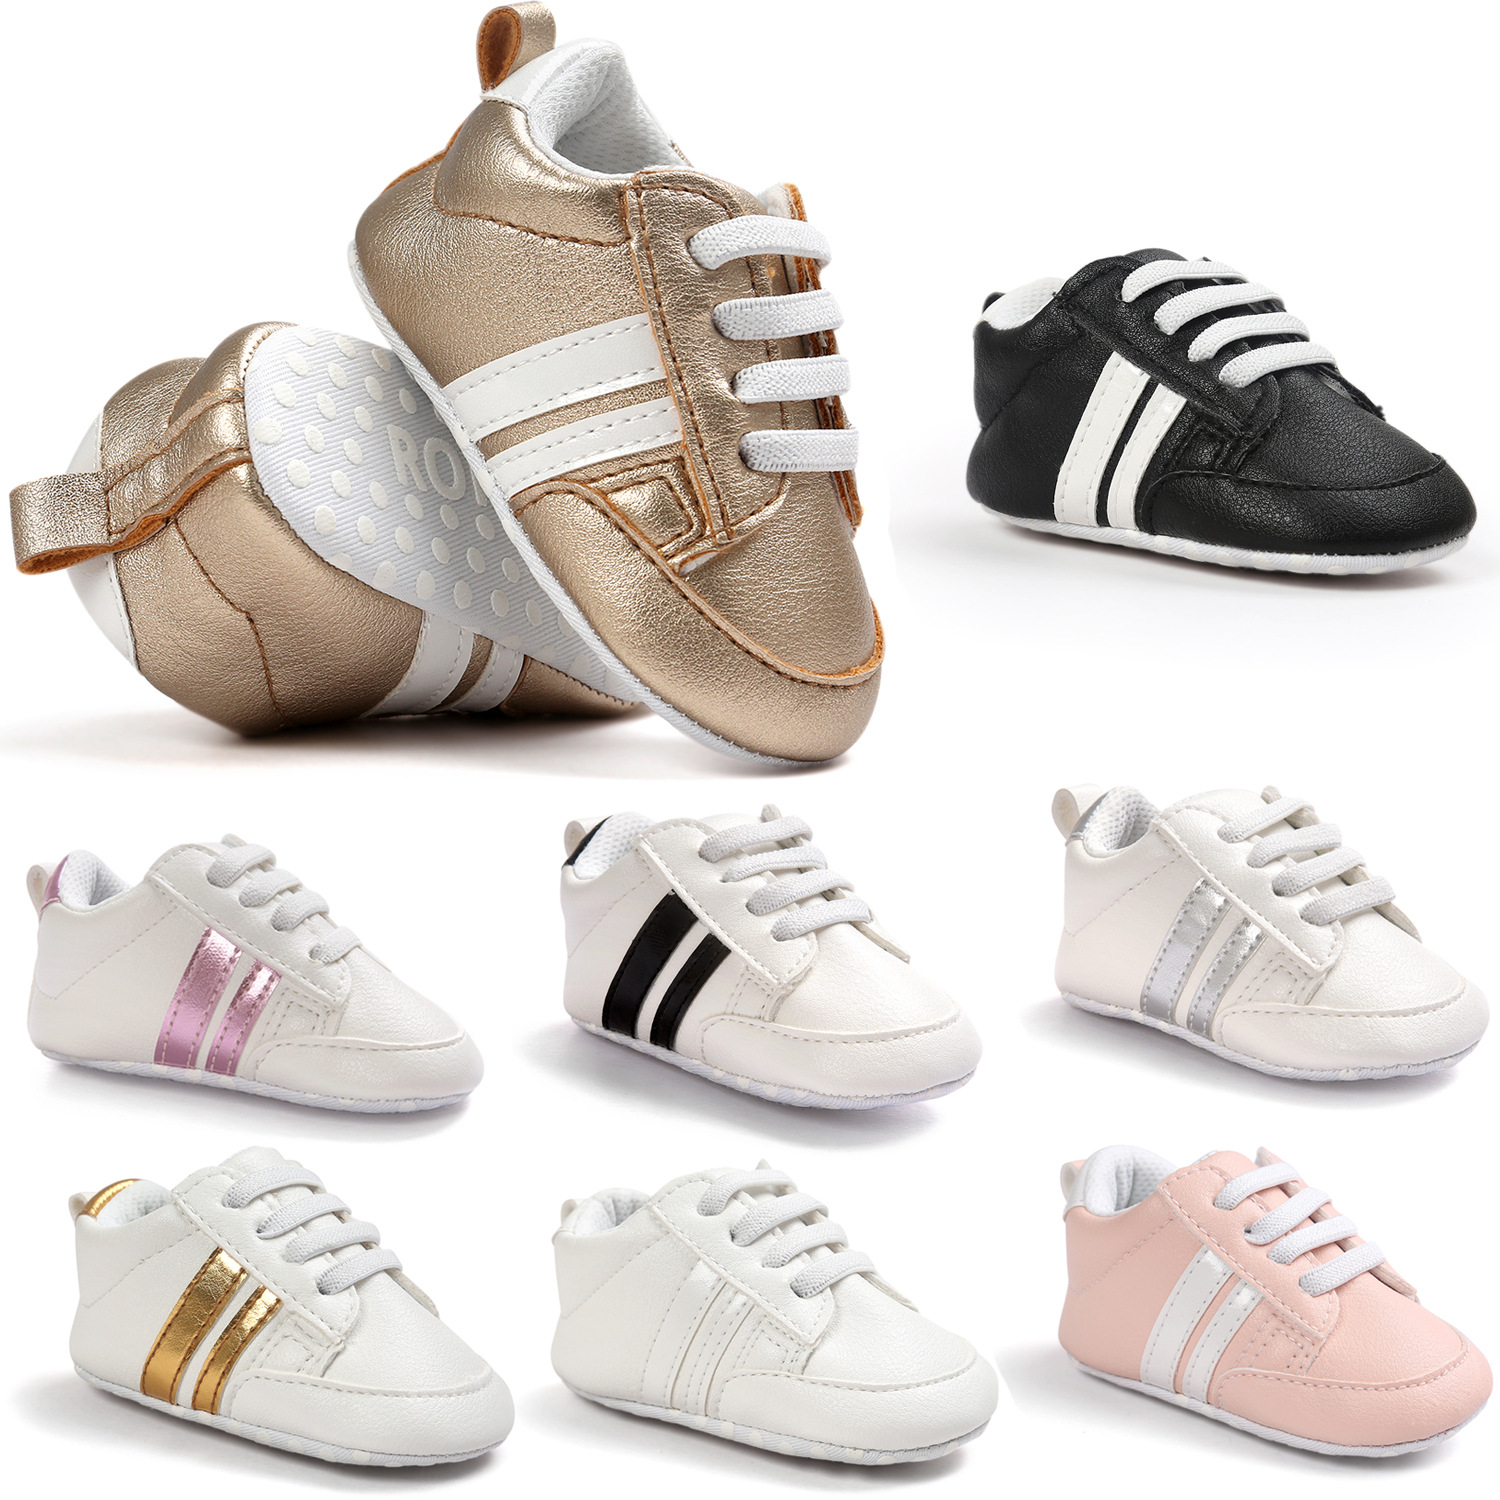 19 Colors Pu Leather Baby Shoes Newborn Girl Boy Soft Infants Crib Shoes Seankers Tmall.CX27C